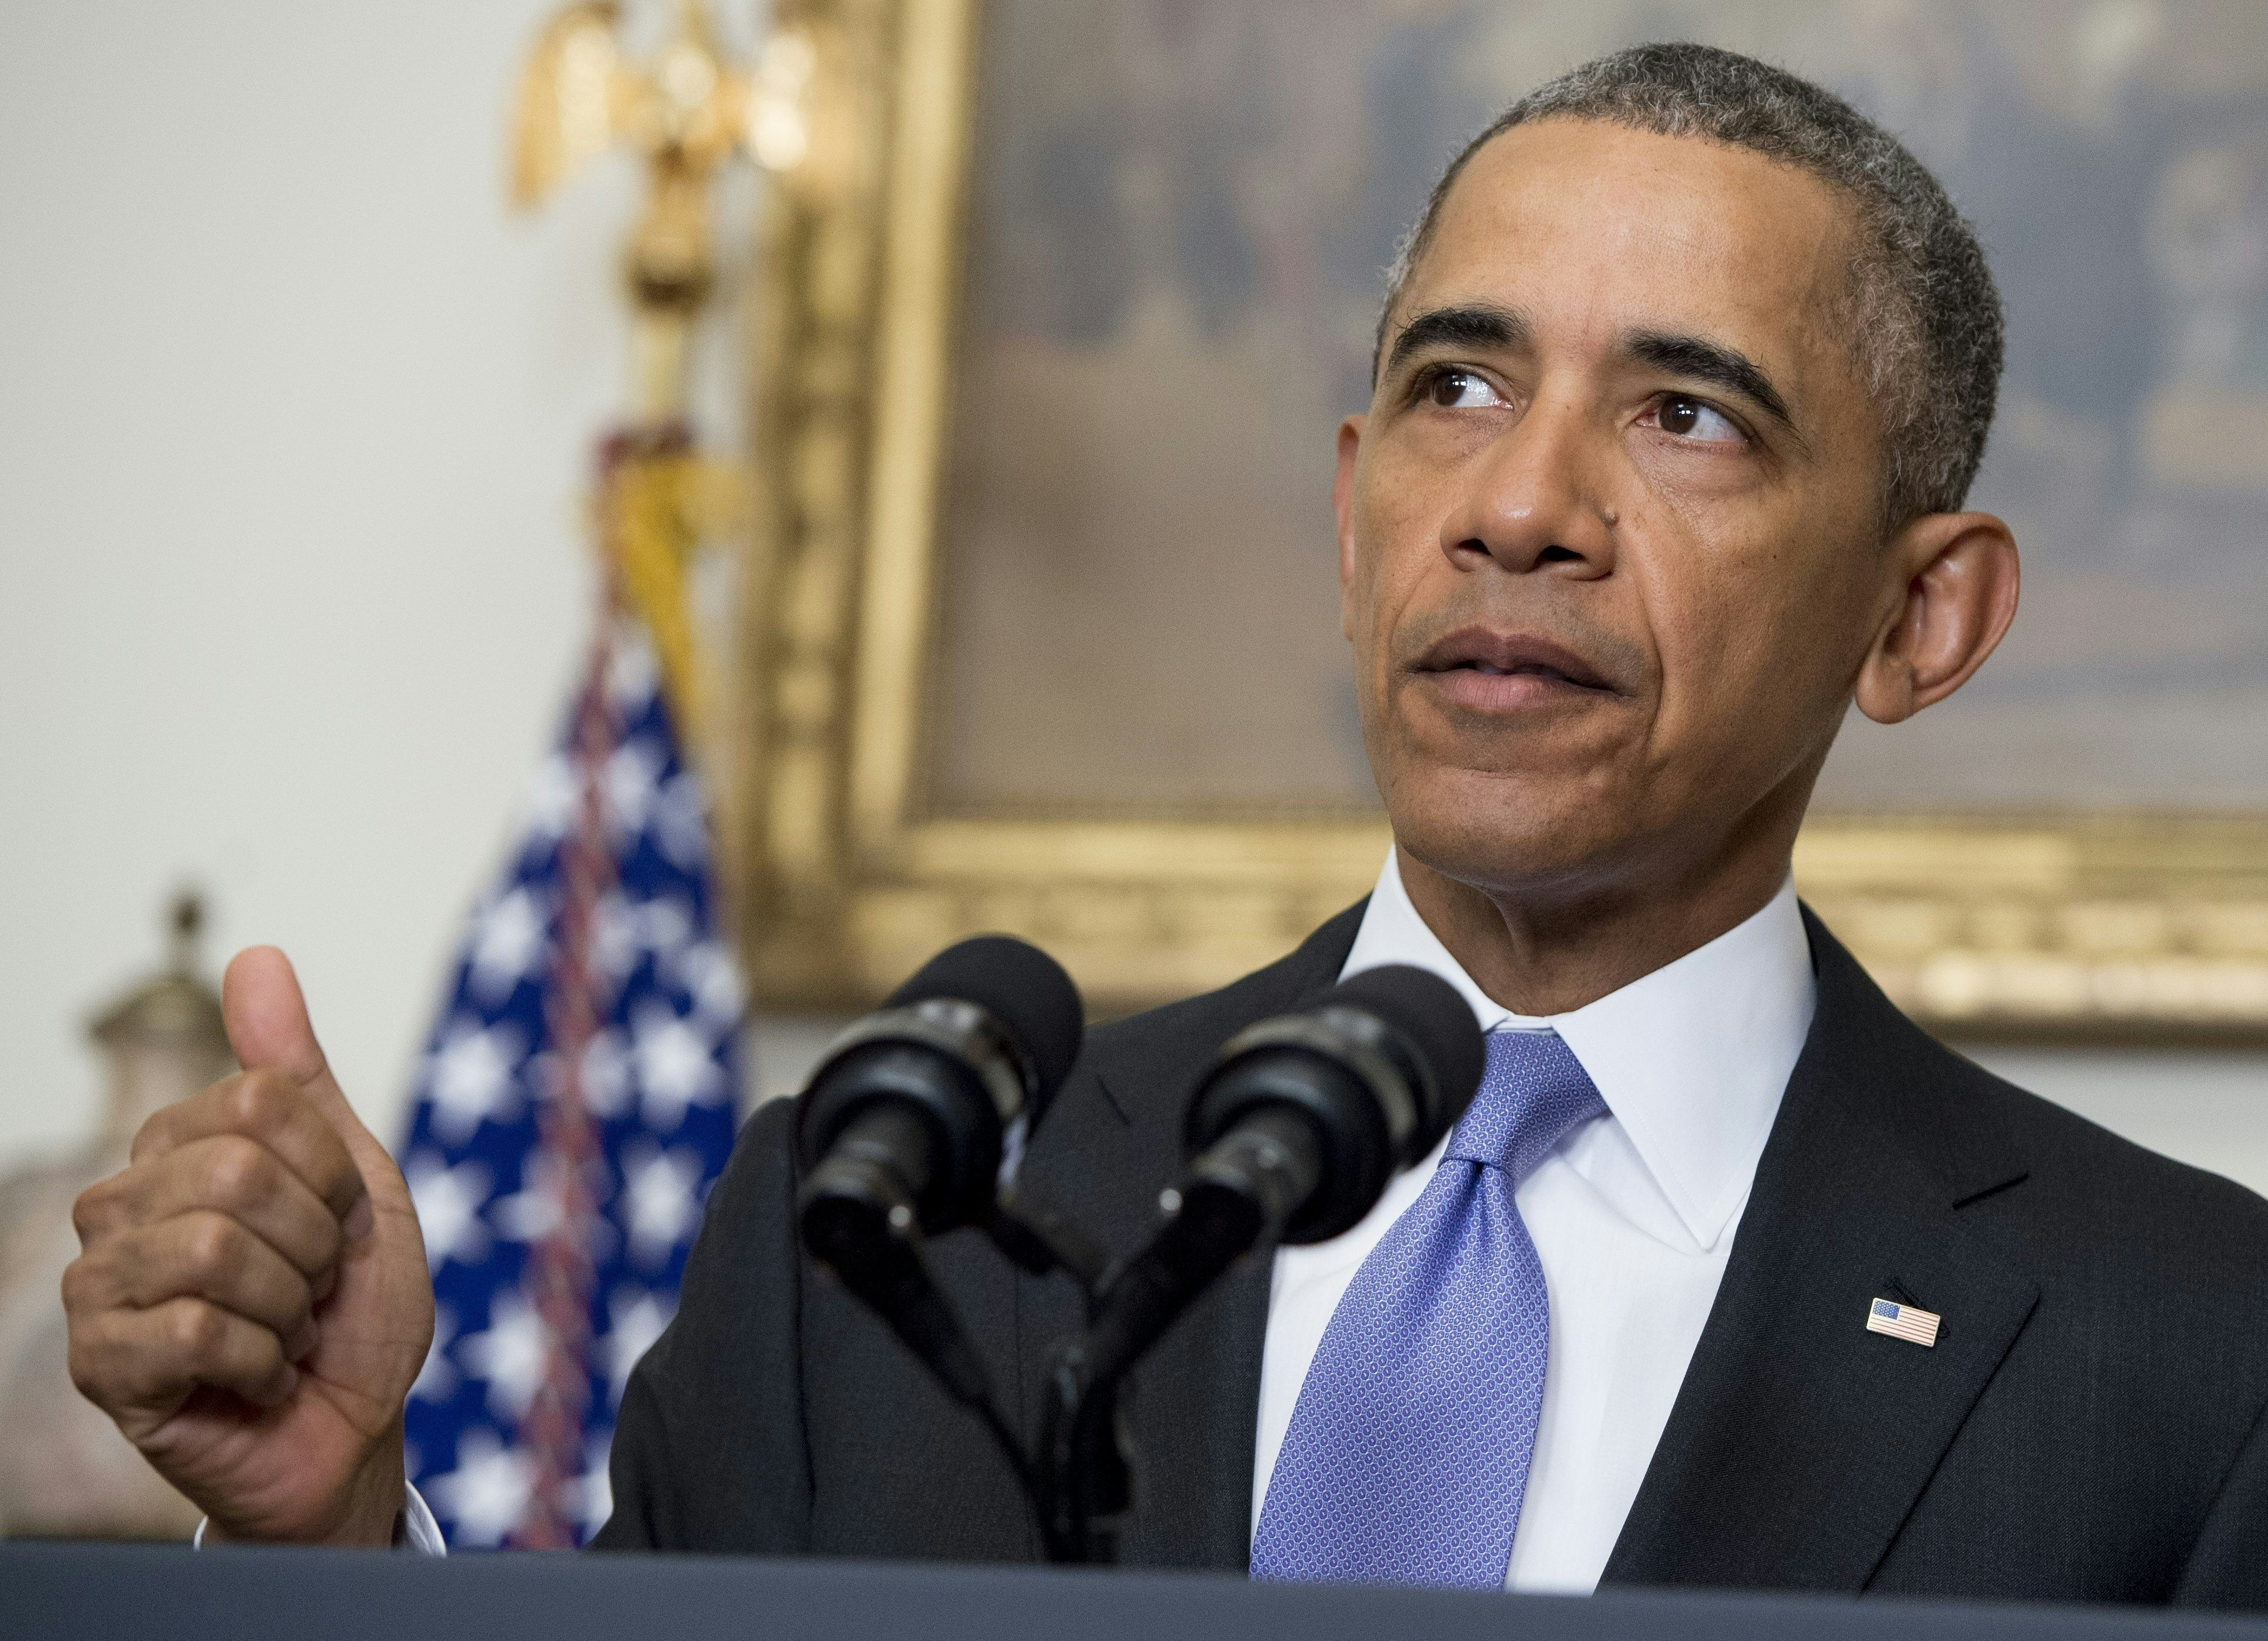 US President Barack Obama speaks about US - Iranian relations, including the Iranian-American nationals that were jailed in Iran and are being freed as part of a prisoner swap, in the Cabinet Room of the White House in Washington, DC, January 17, 2016.  The presidential statement comes after the lifting of international sanctions against Iran as part of a nuclear deal capped by a US-Iranian prisoner exchange. / AFP / SAUL LOEB        (Photo credit should read SAUL LOEB/AFP/Getty Images)